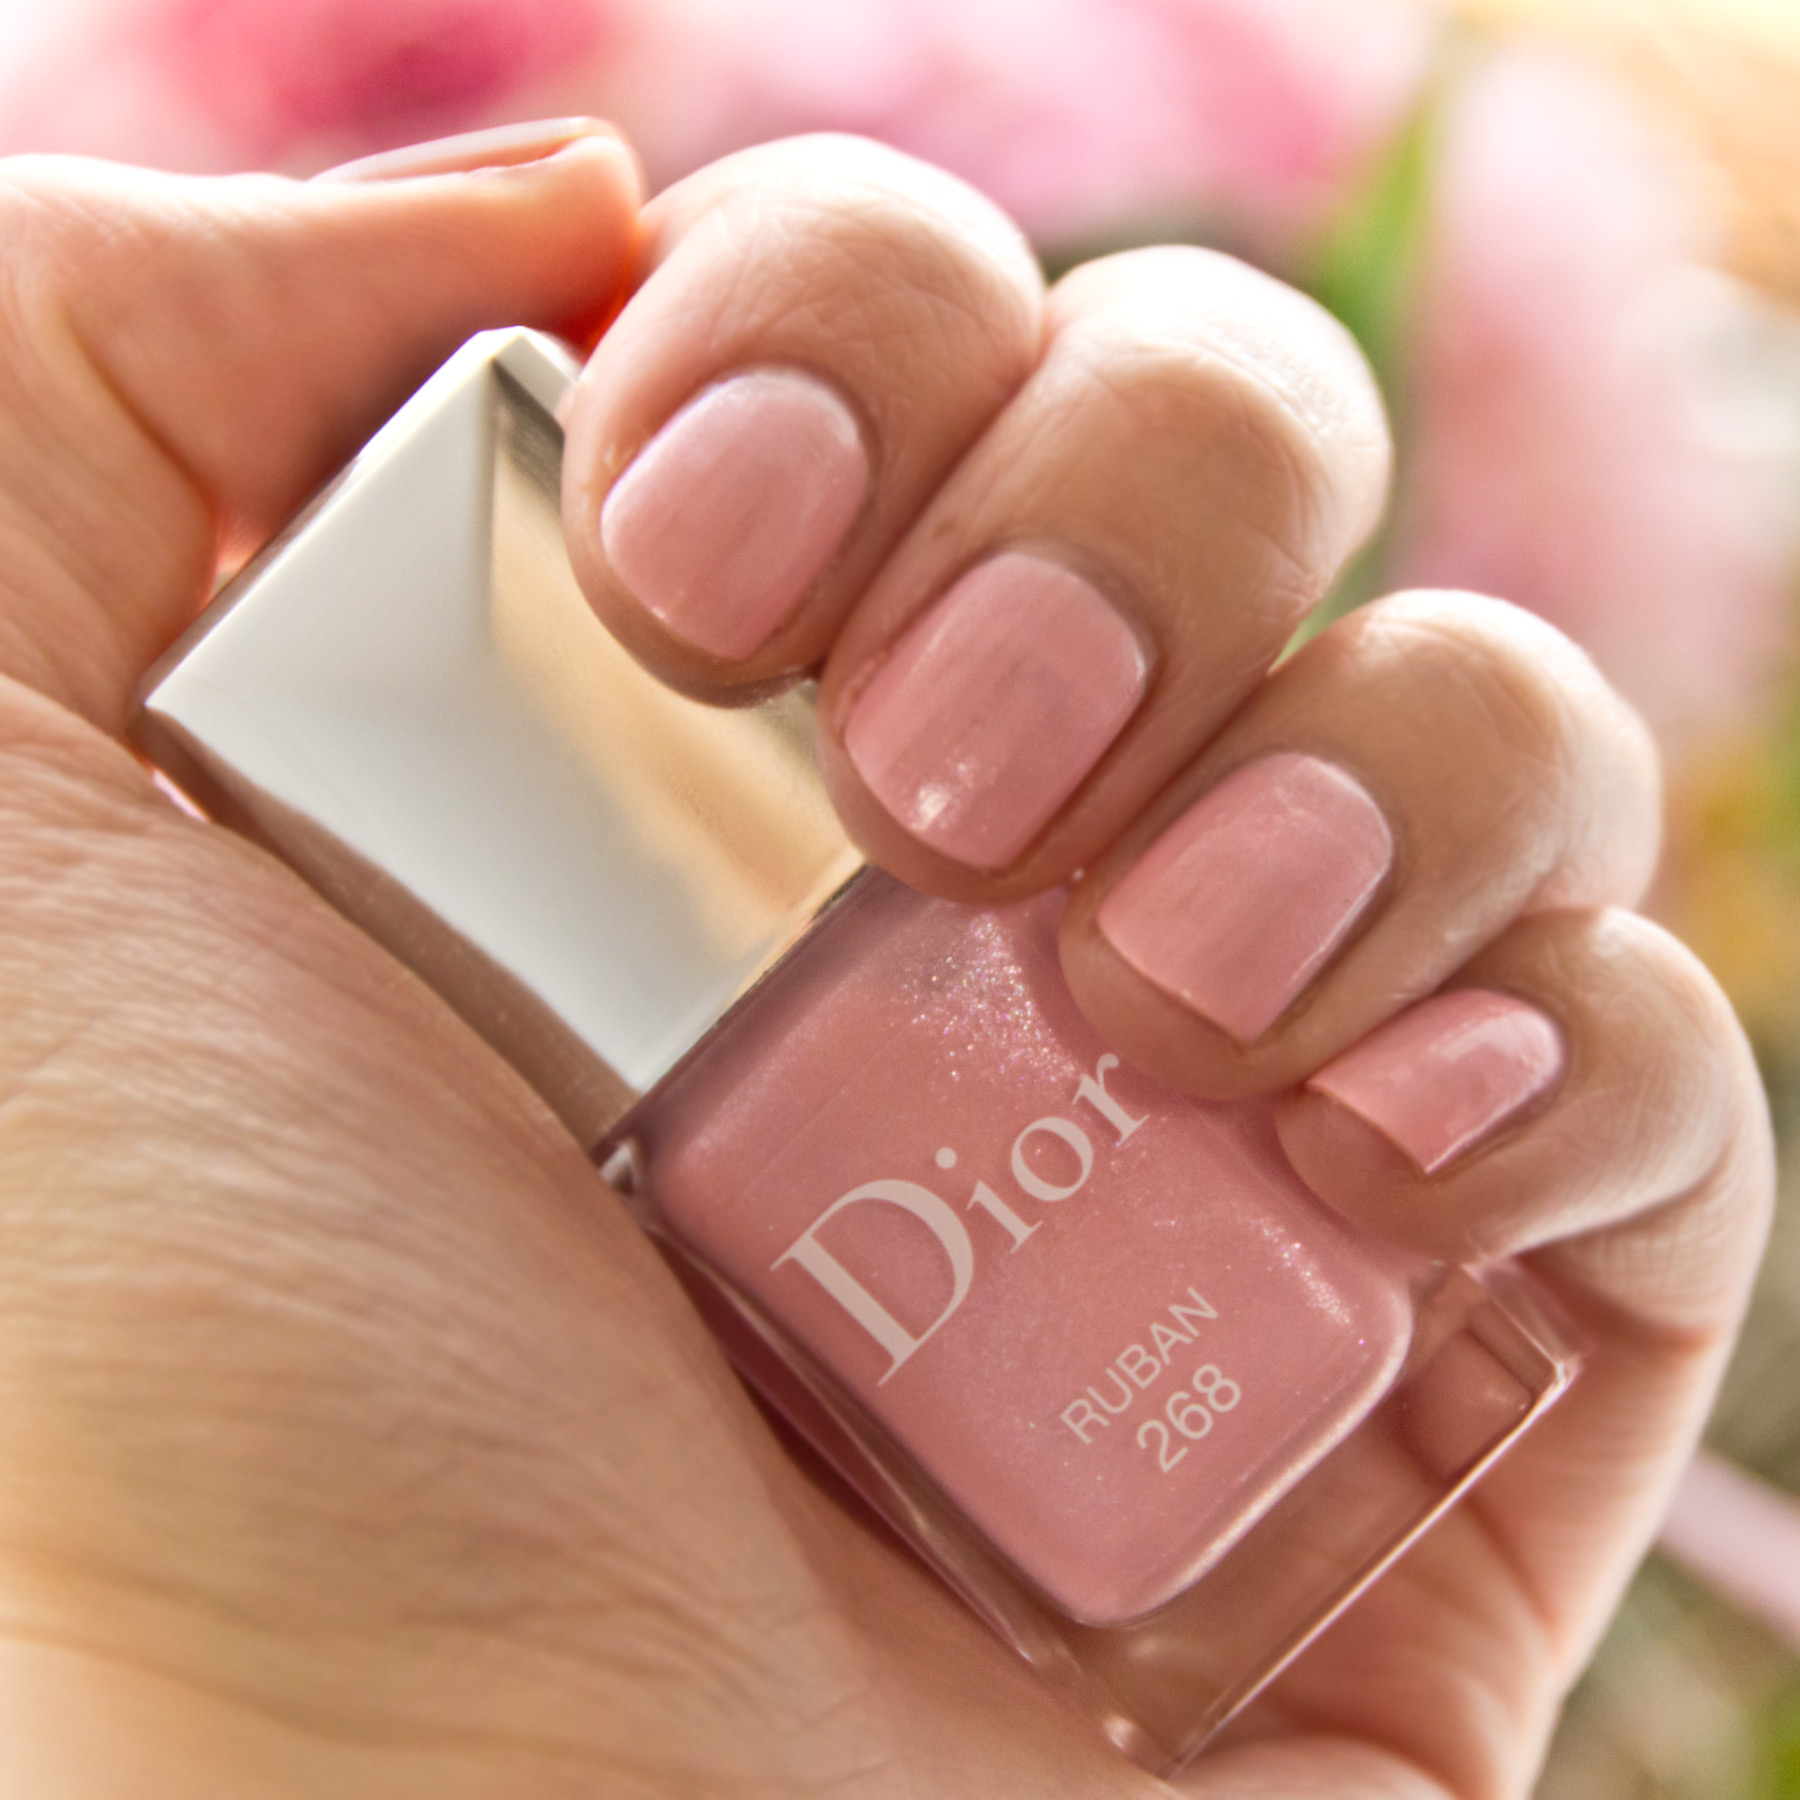 Dior Ruban über Essie Romper Room | Marie-Theres Schindler - Beauty Blog